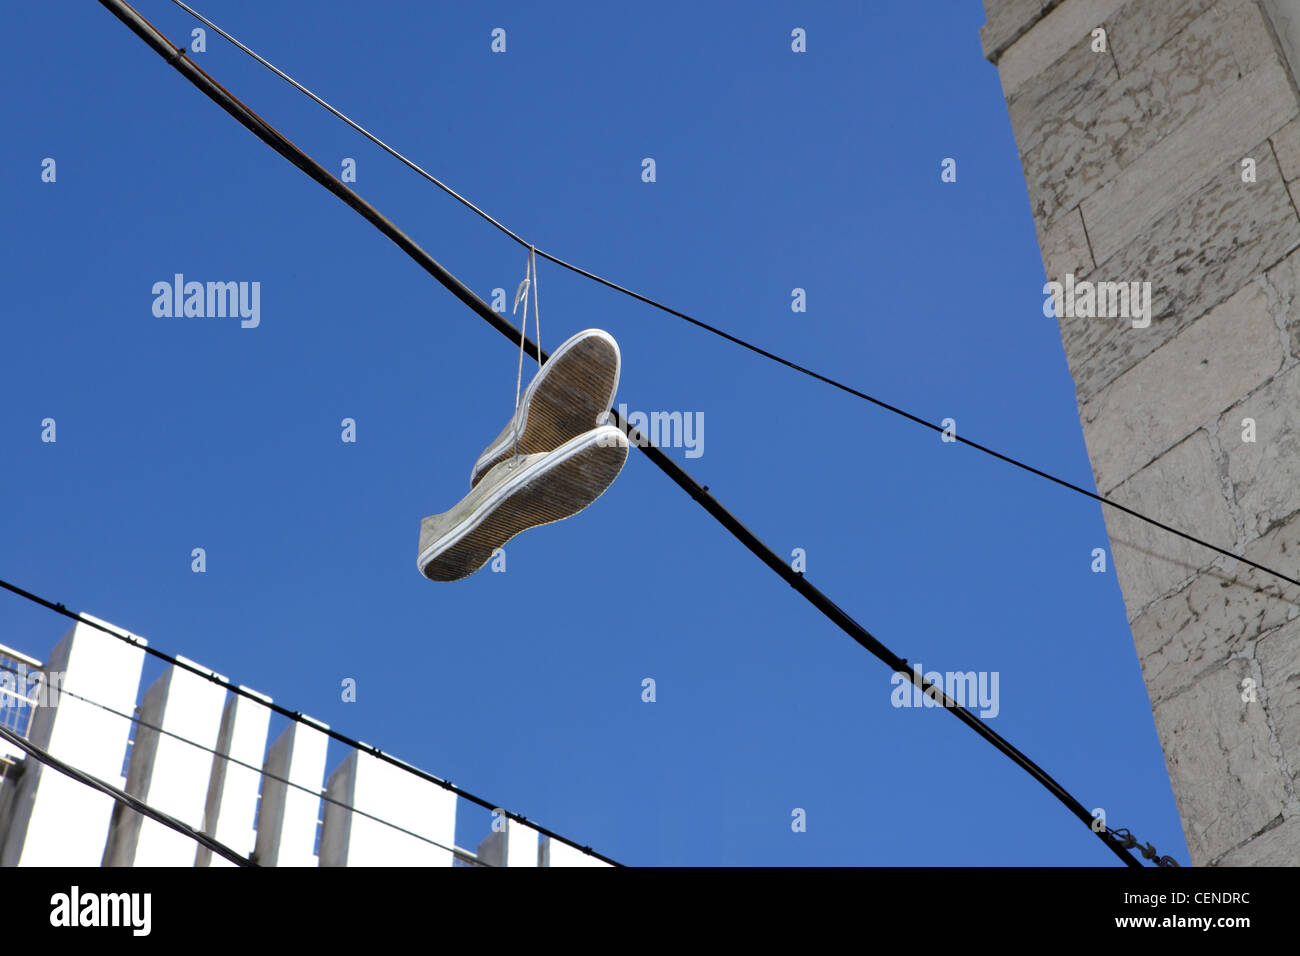 Shoefiti, rite de passage de la culture des jeunes, le centre de Lisbonne, Portugal. Photo Stock